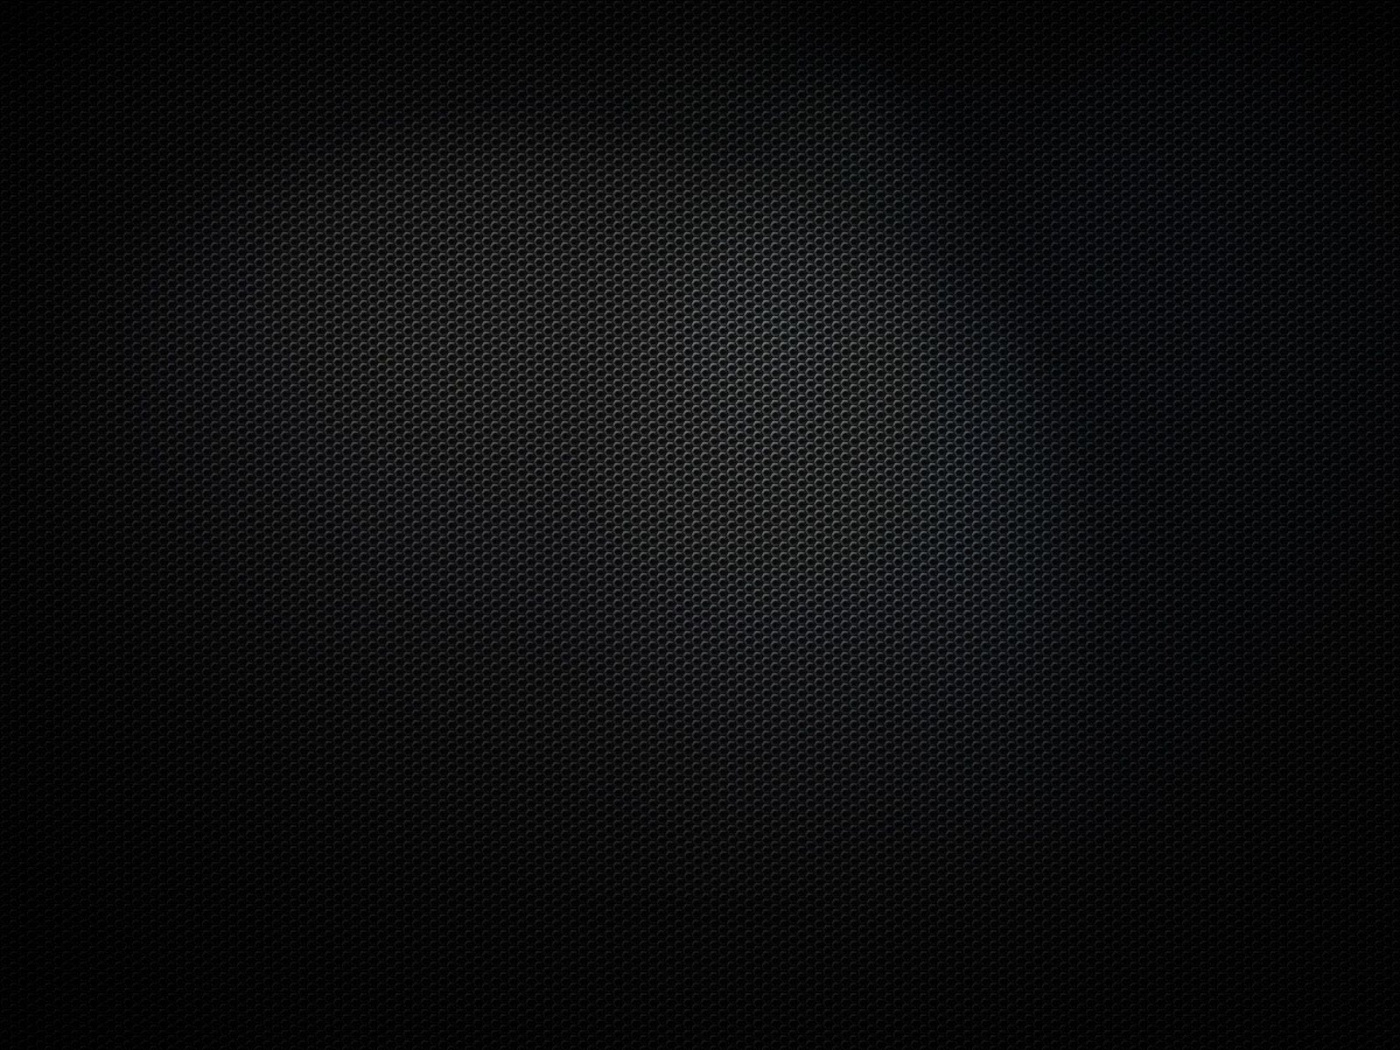 Abstract Black Textures Artwork Backgrounds